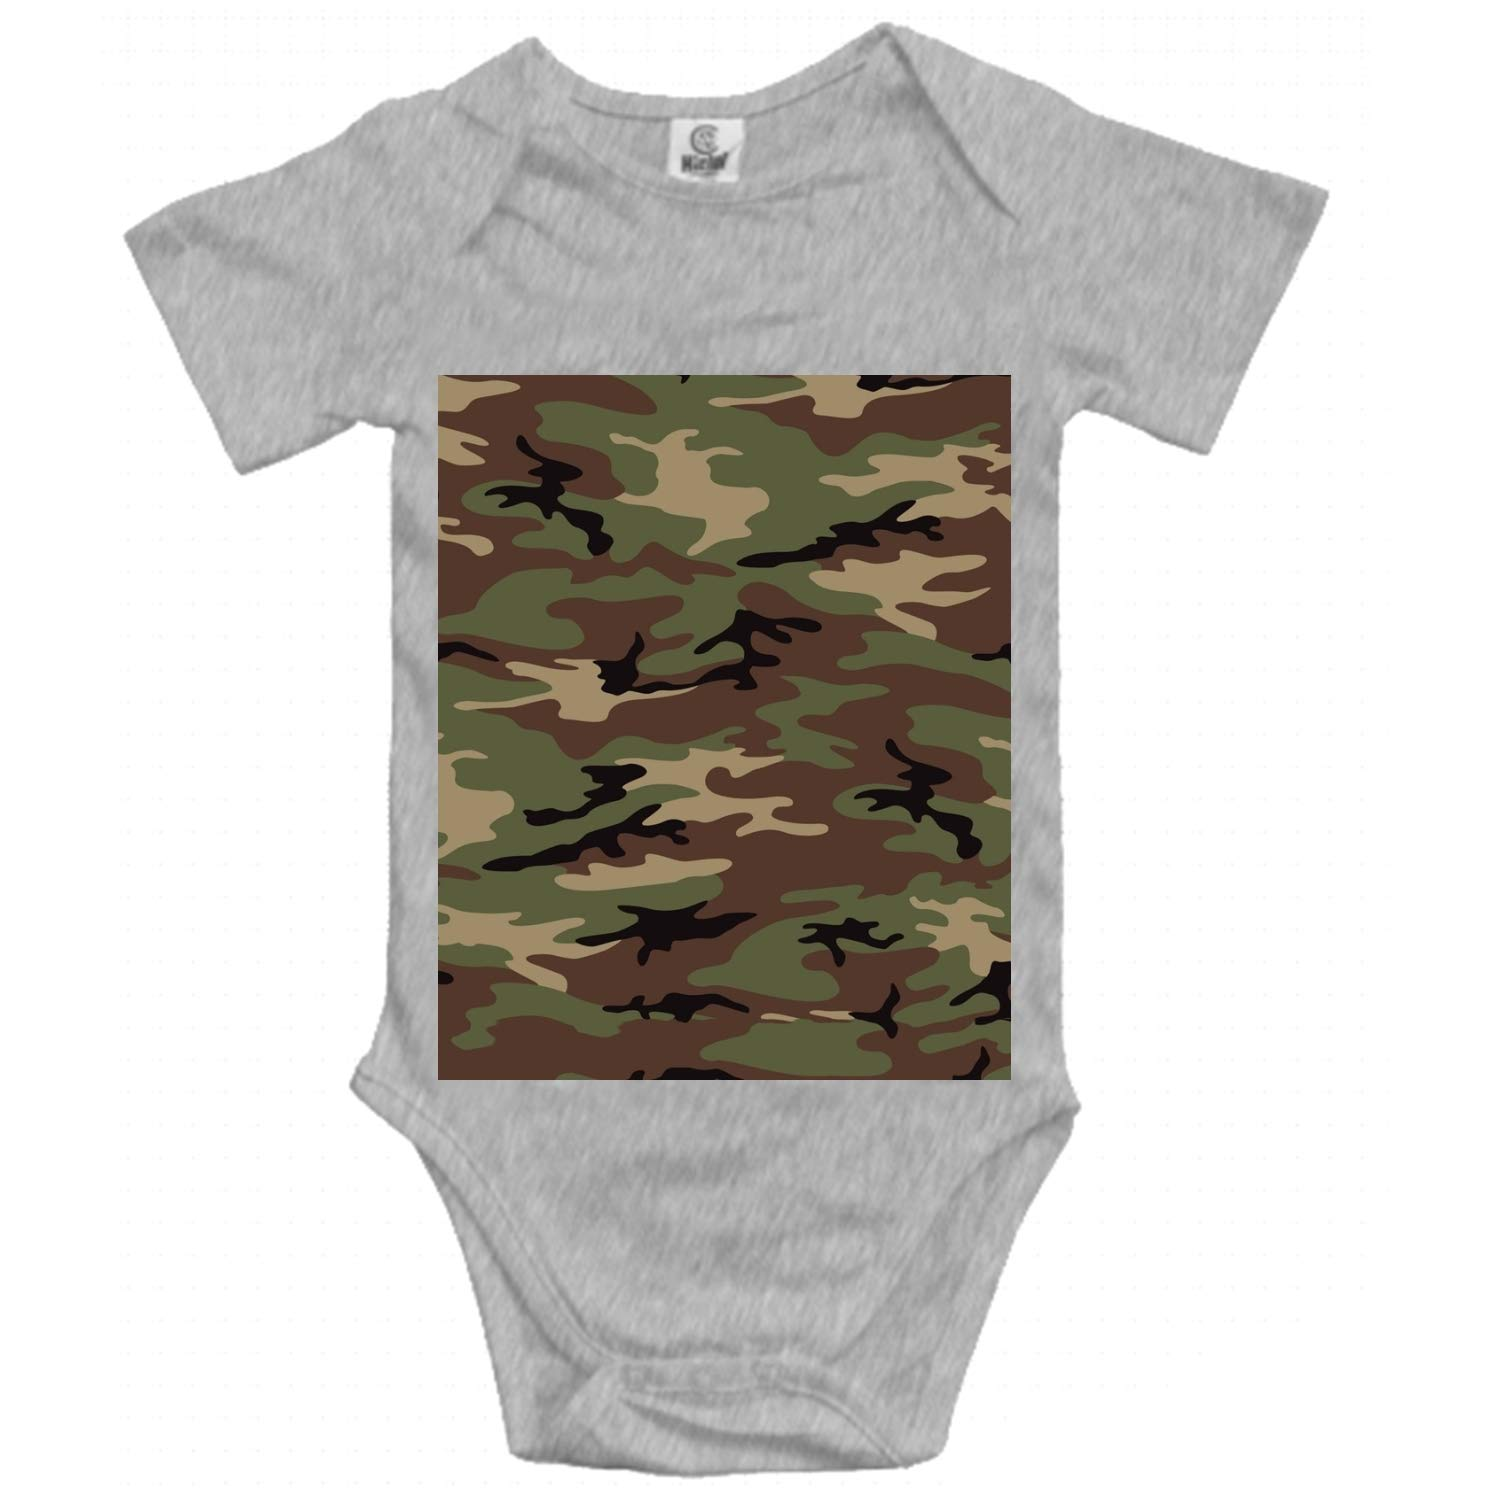 Bodysuits YooSoeLink Newborn Toddler Baby Sleeveless Bodysuit-Woodland Army Camouflage Romper Jumpsuit Casual Clothes Bodysuits & One-Piece Suits